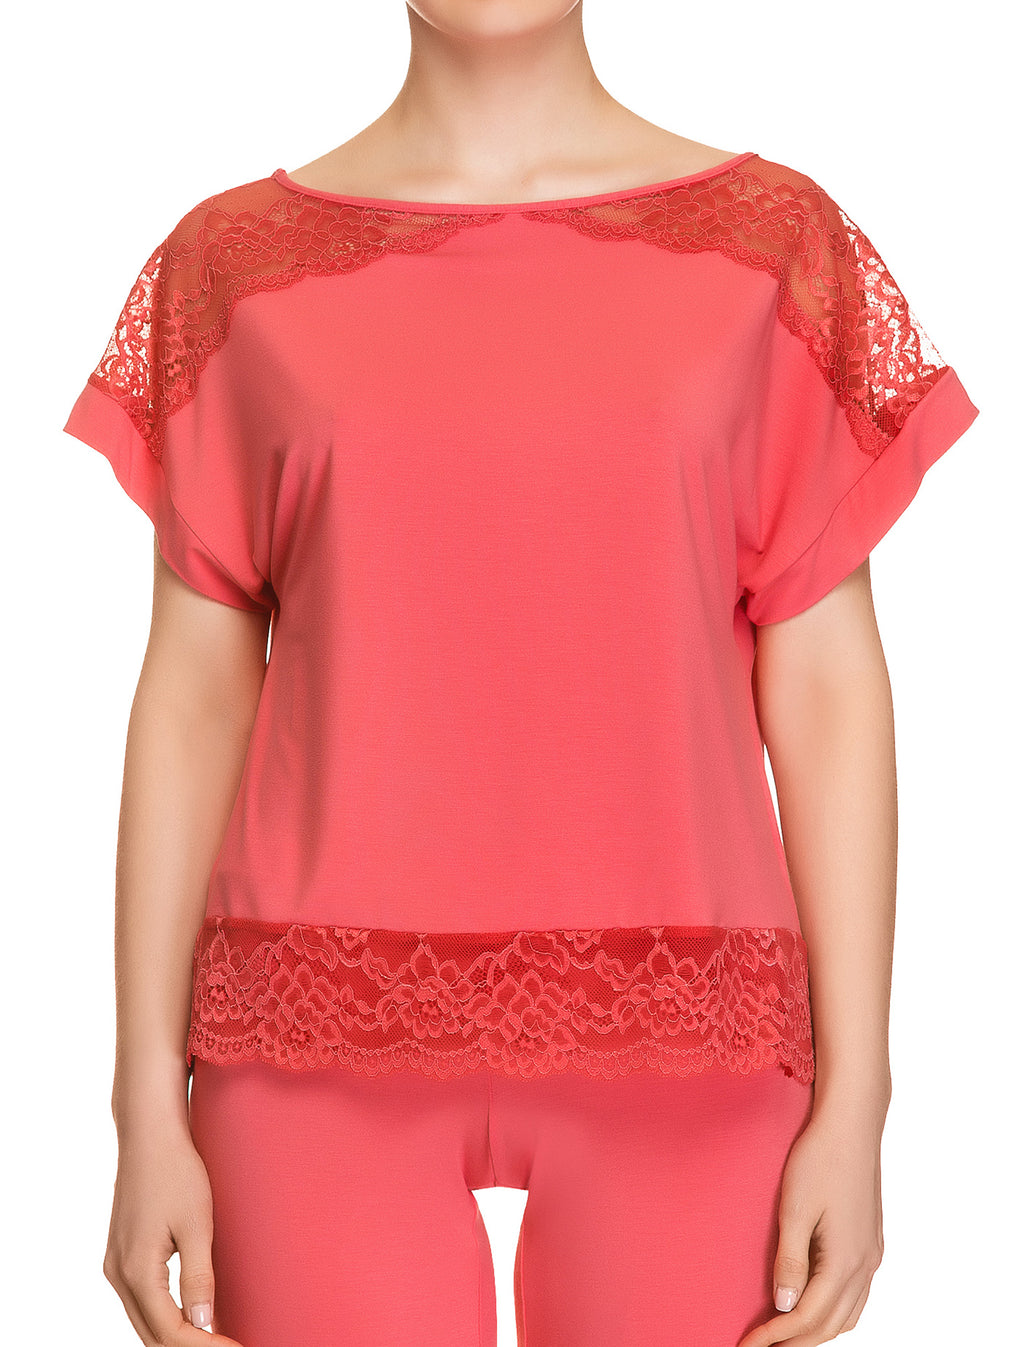 Pyjama Top With Lace Details